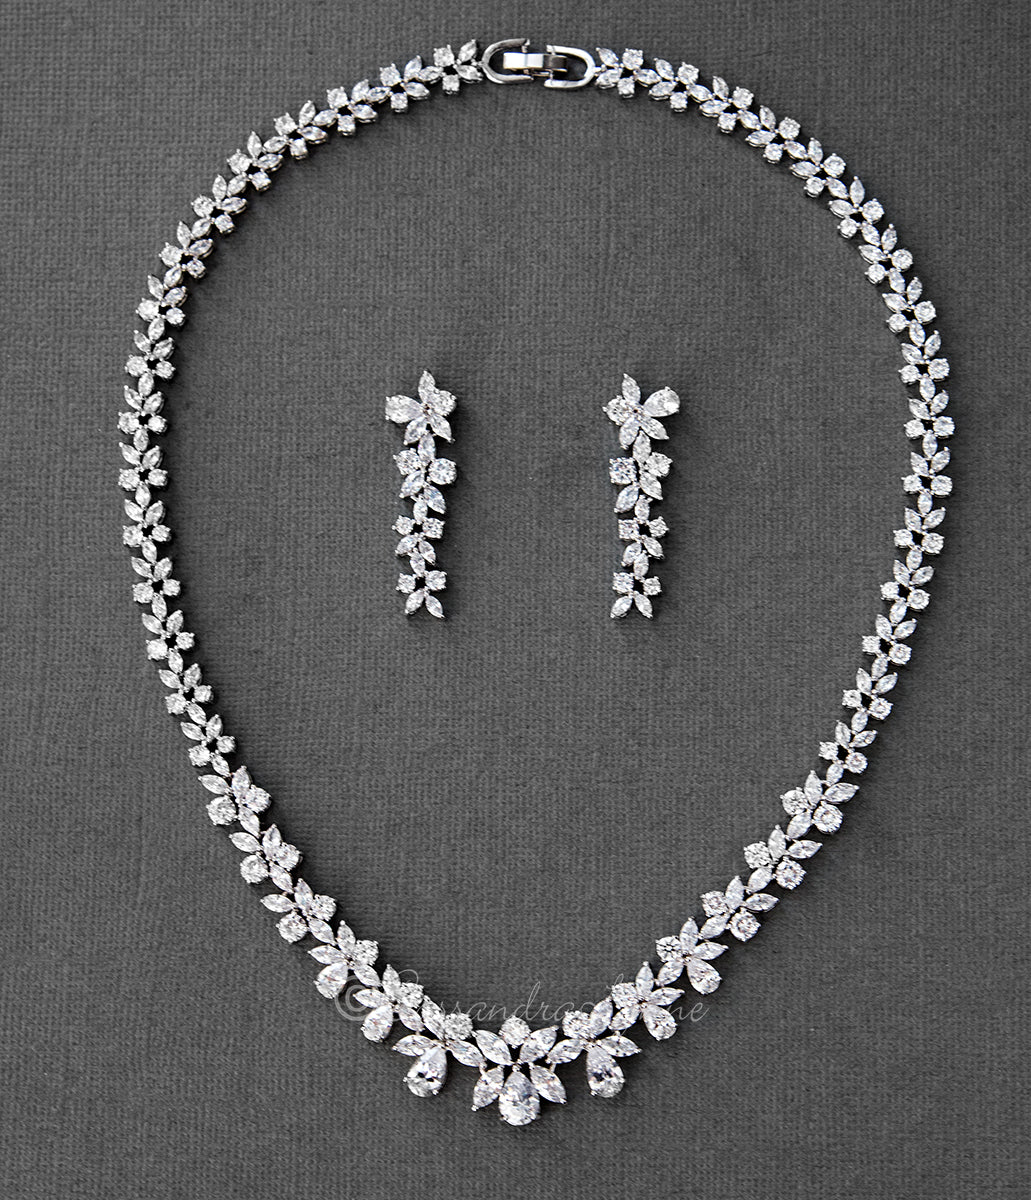 Bridal Necklace Set of Graduated Teardrops